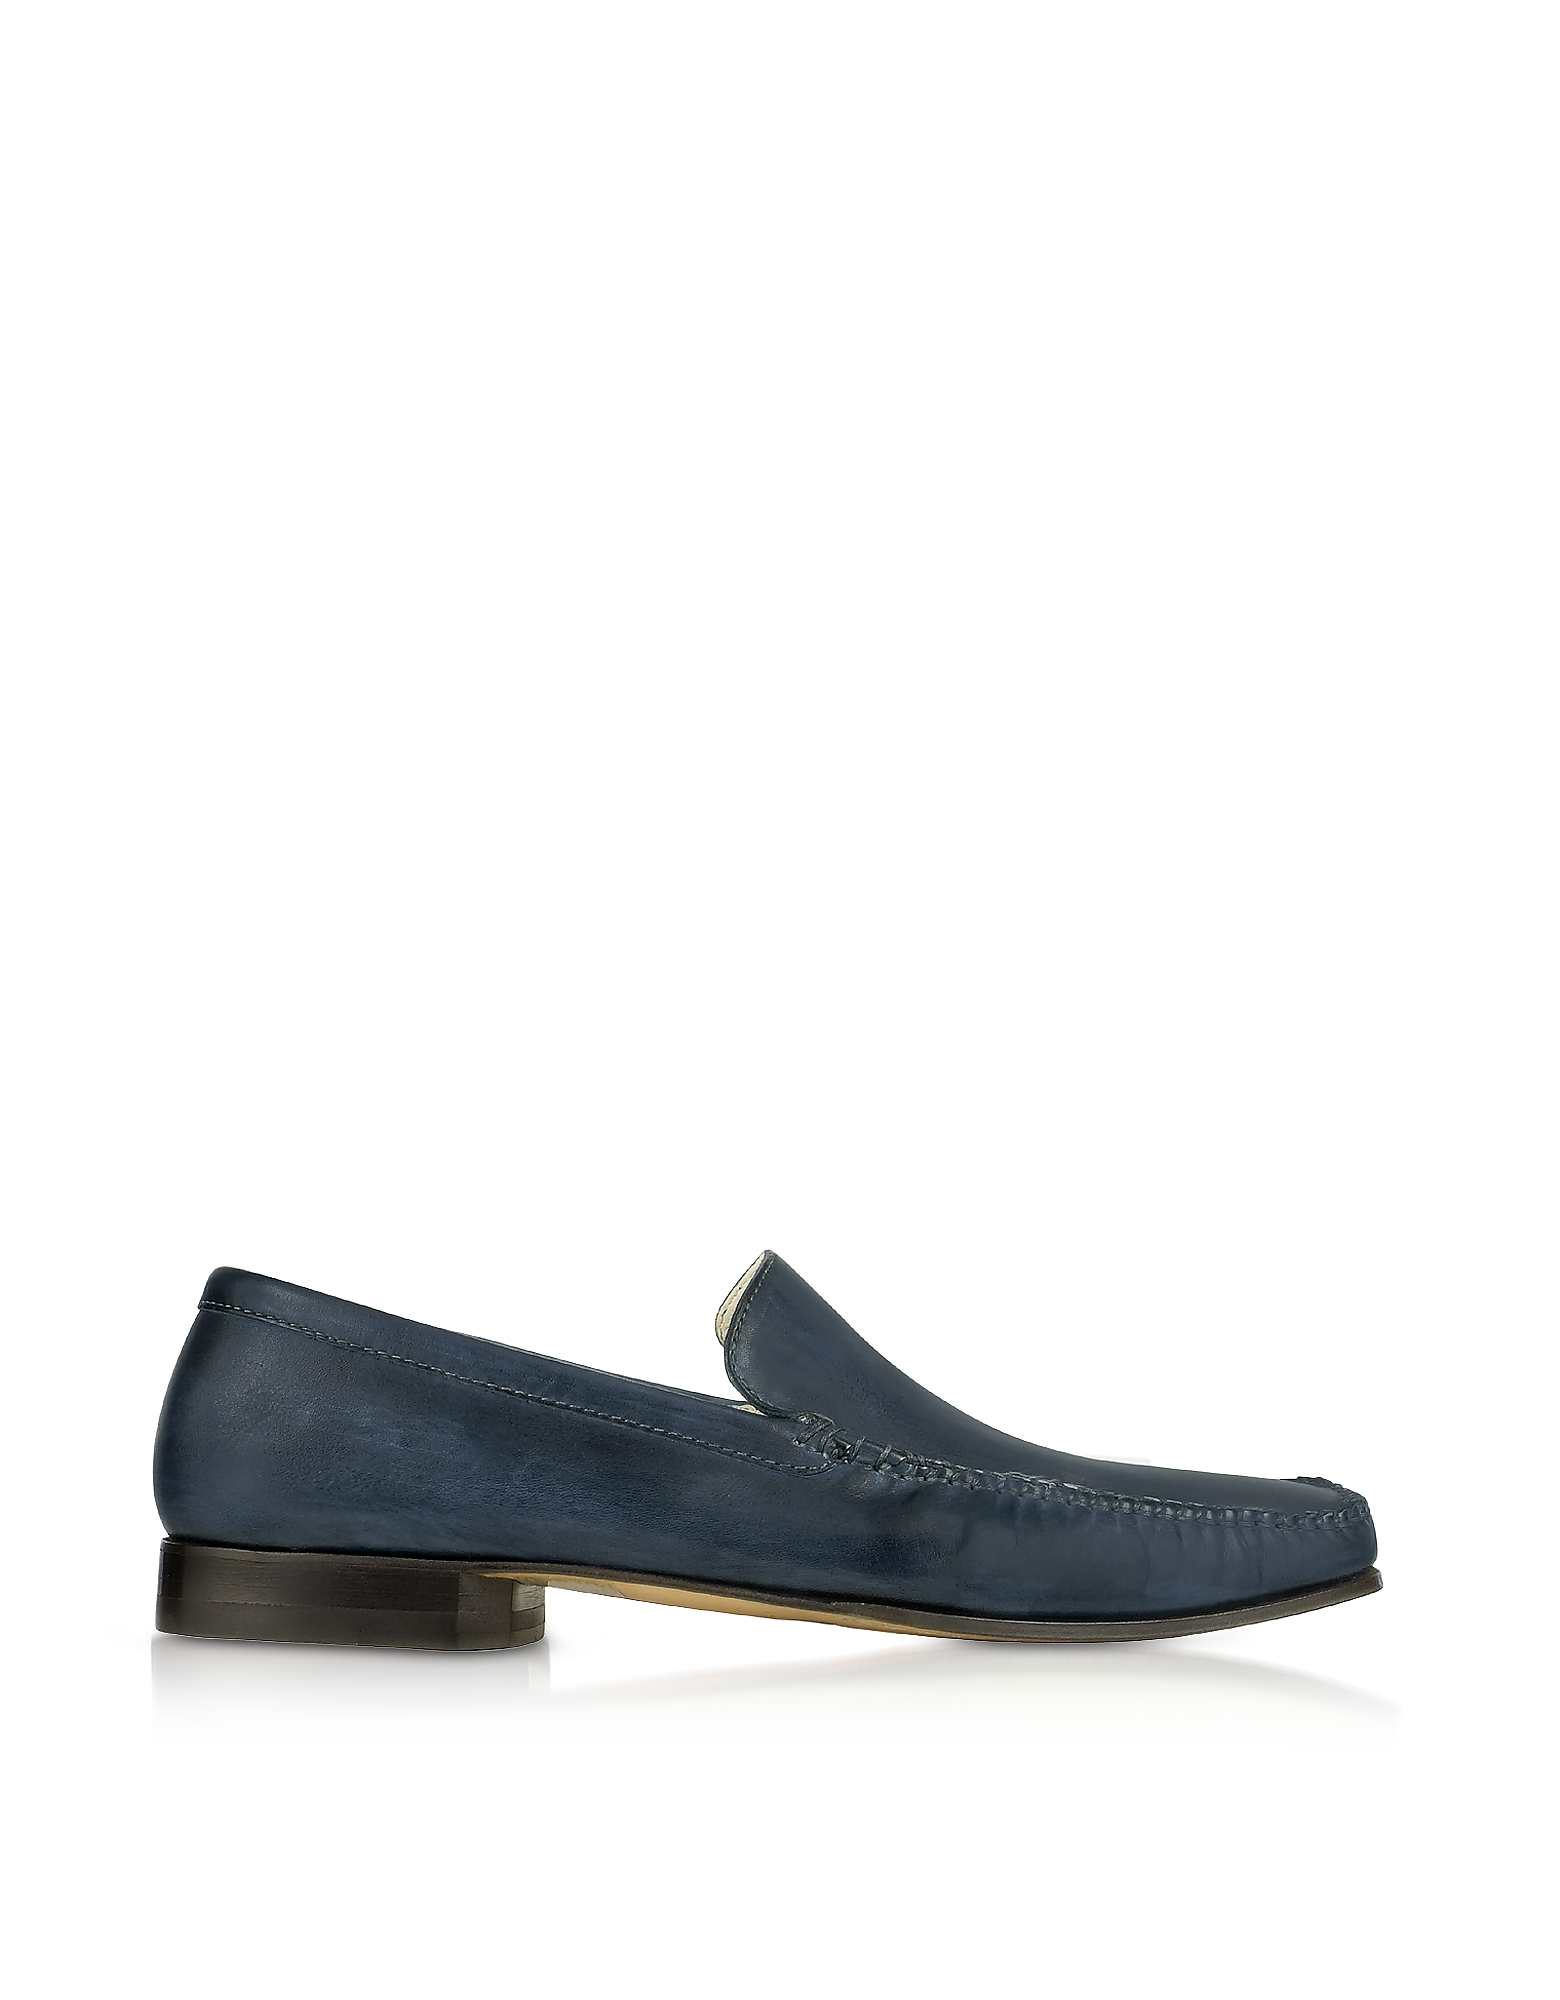 Pakerson Designer Shoes, Blue Italian Handmade Leather Loafer Shoes